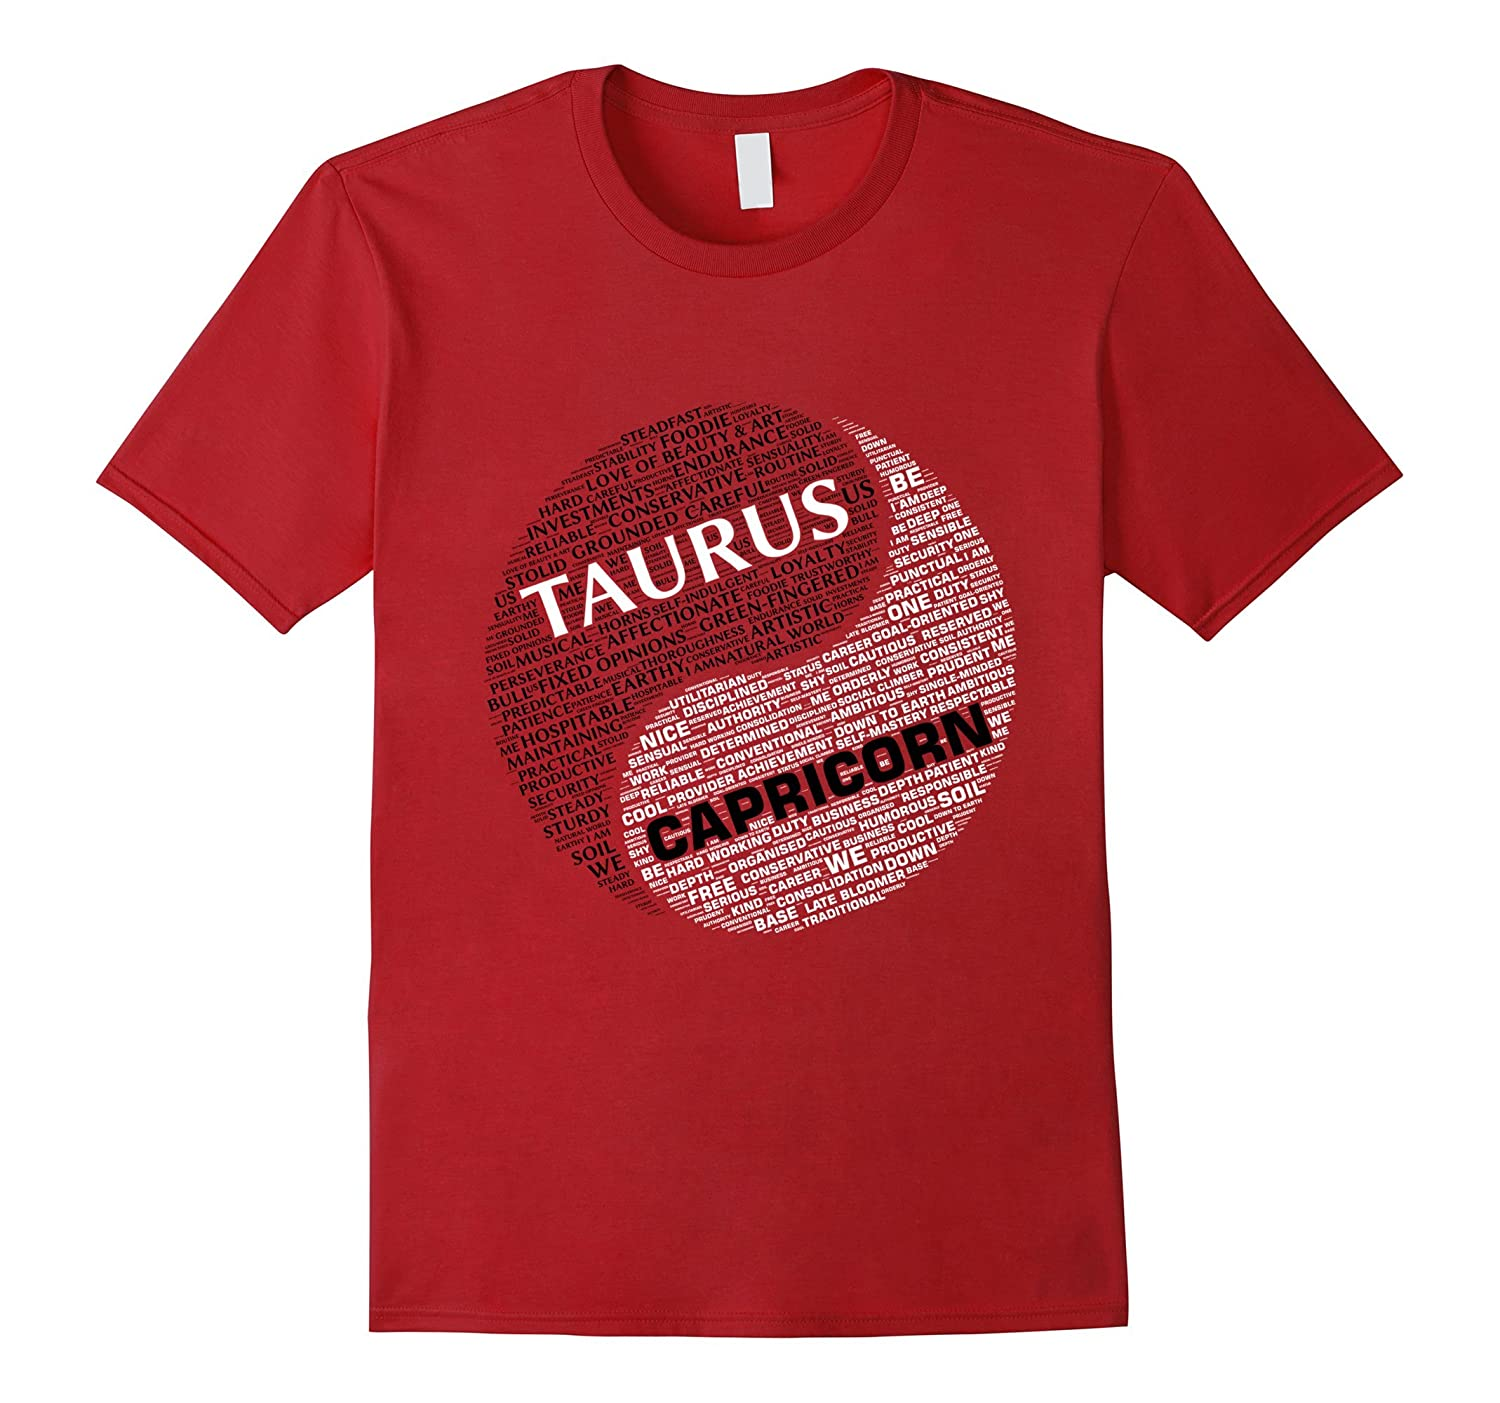 Zodiac Facts shirt: Men & Women Taurus and Capricorn T-shirt-TH